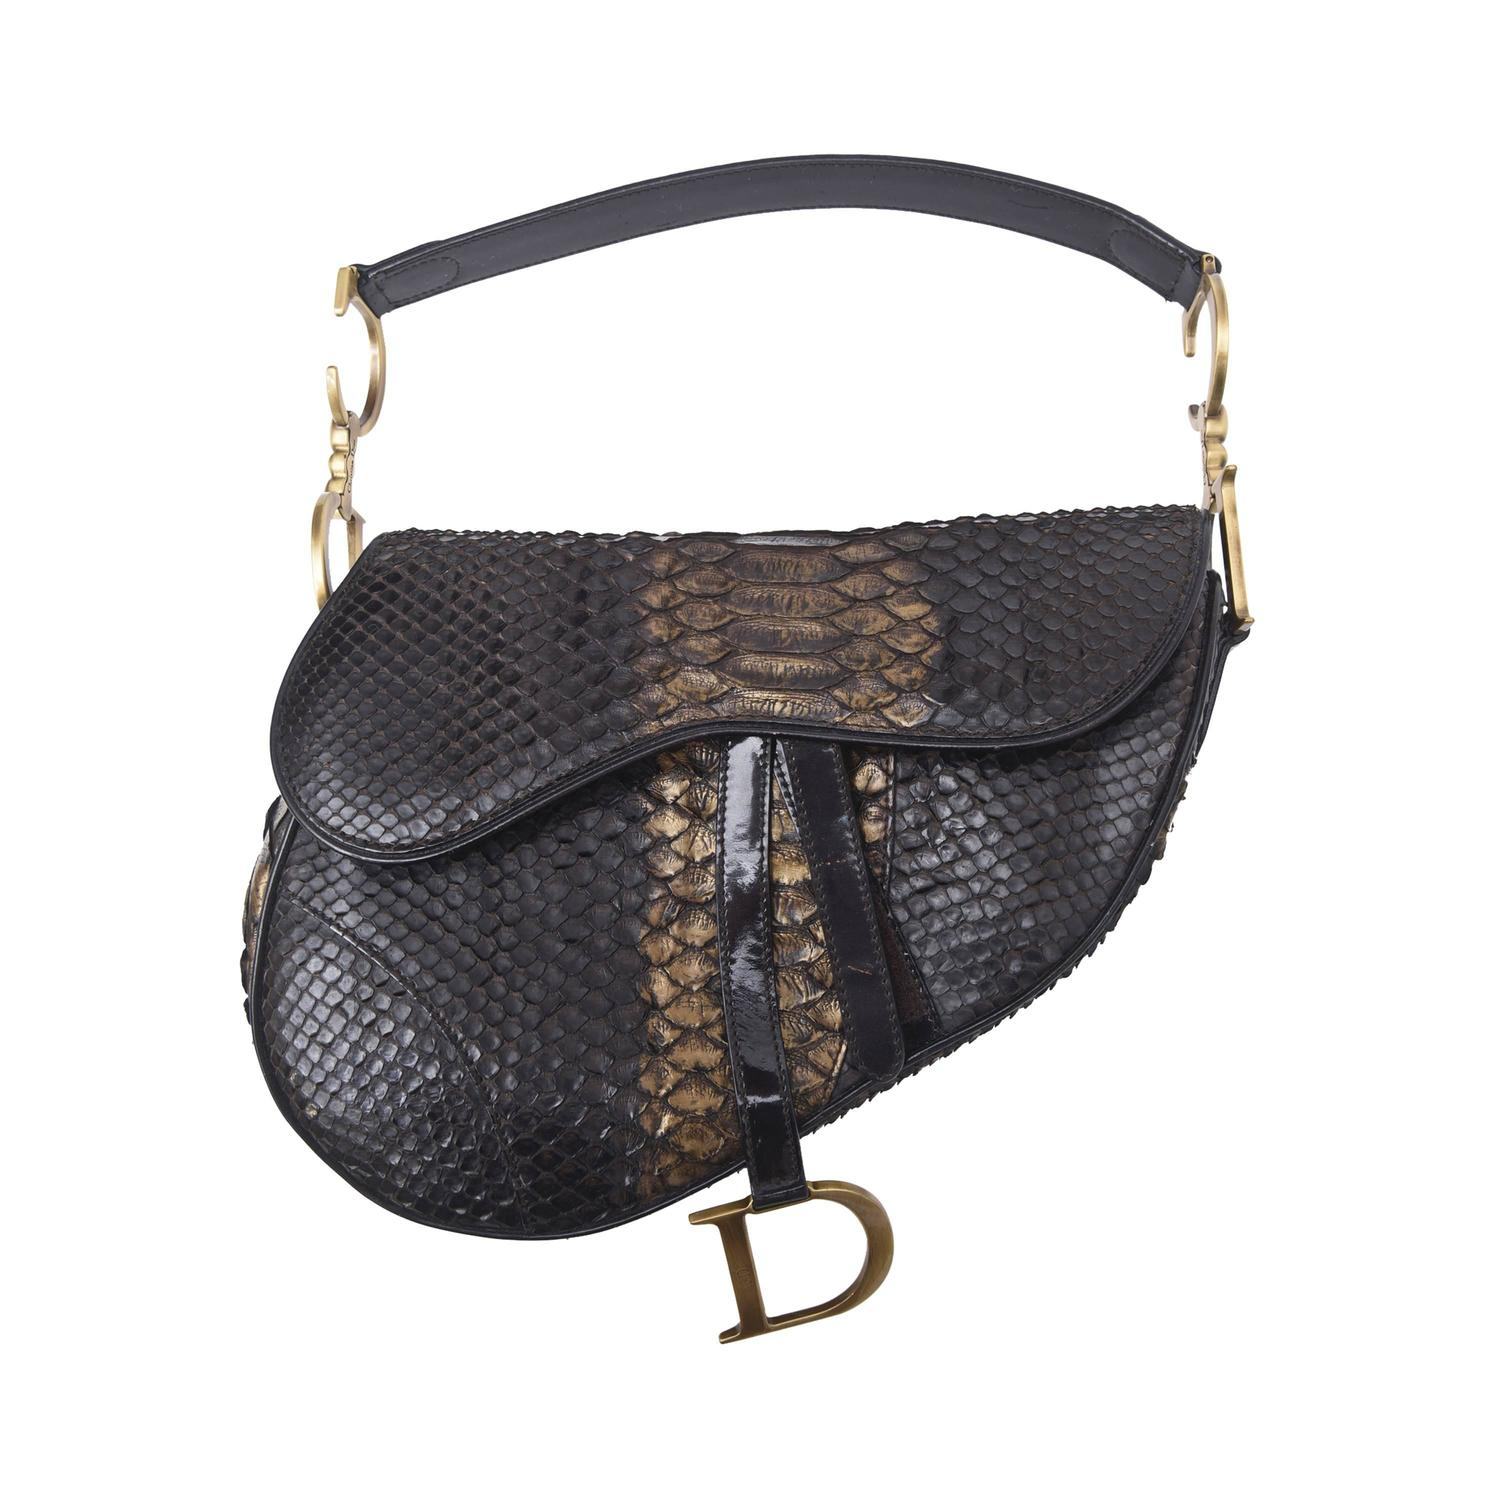 Early Limited Edition John Galliano For Dior Python Saddle Bag At 1stdibs